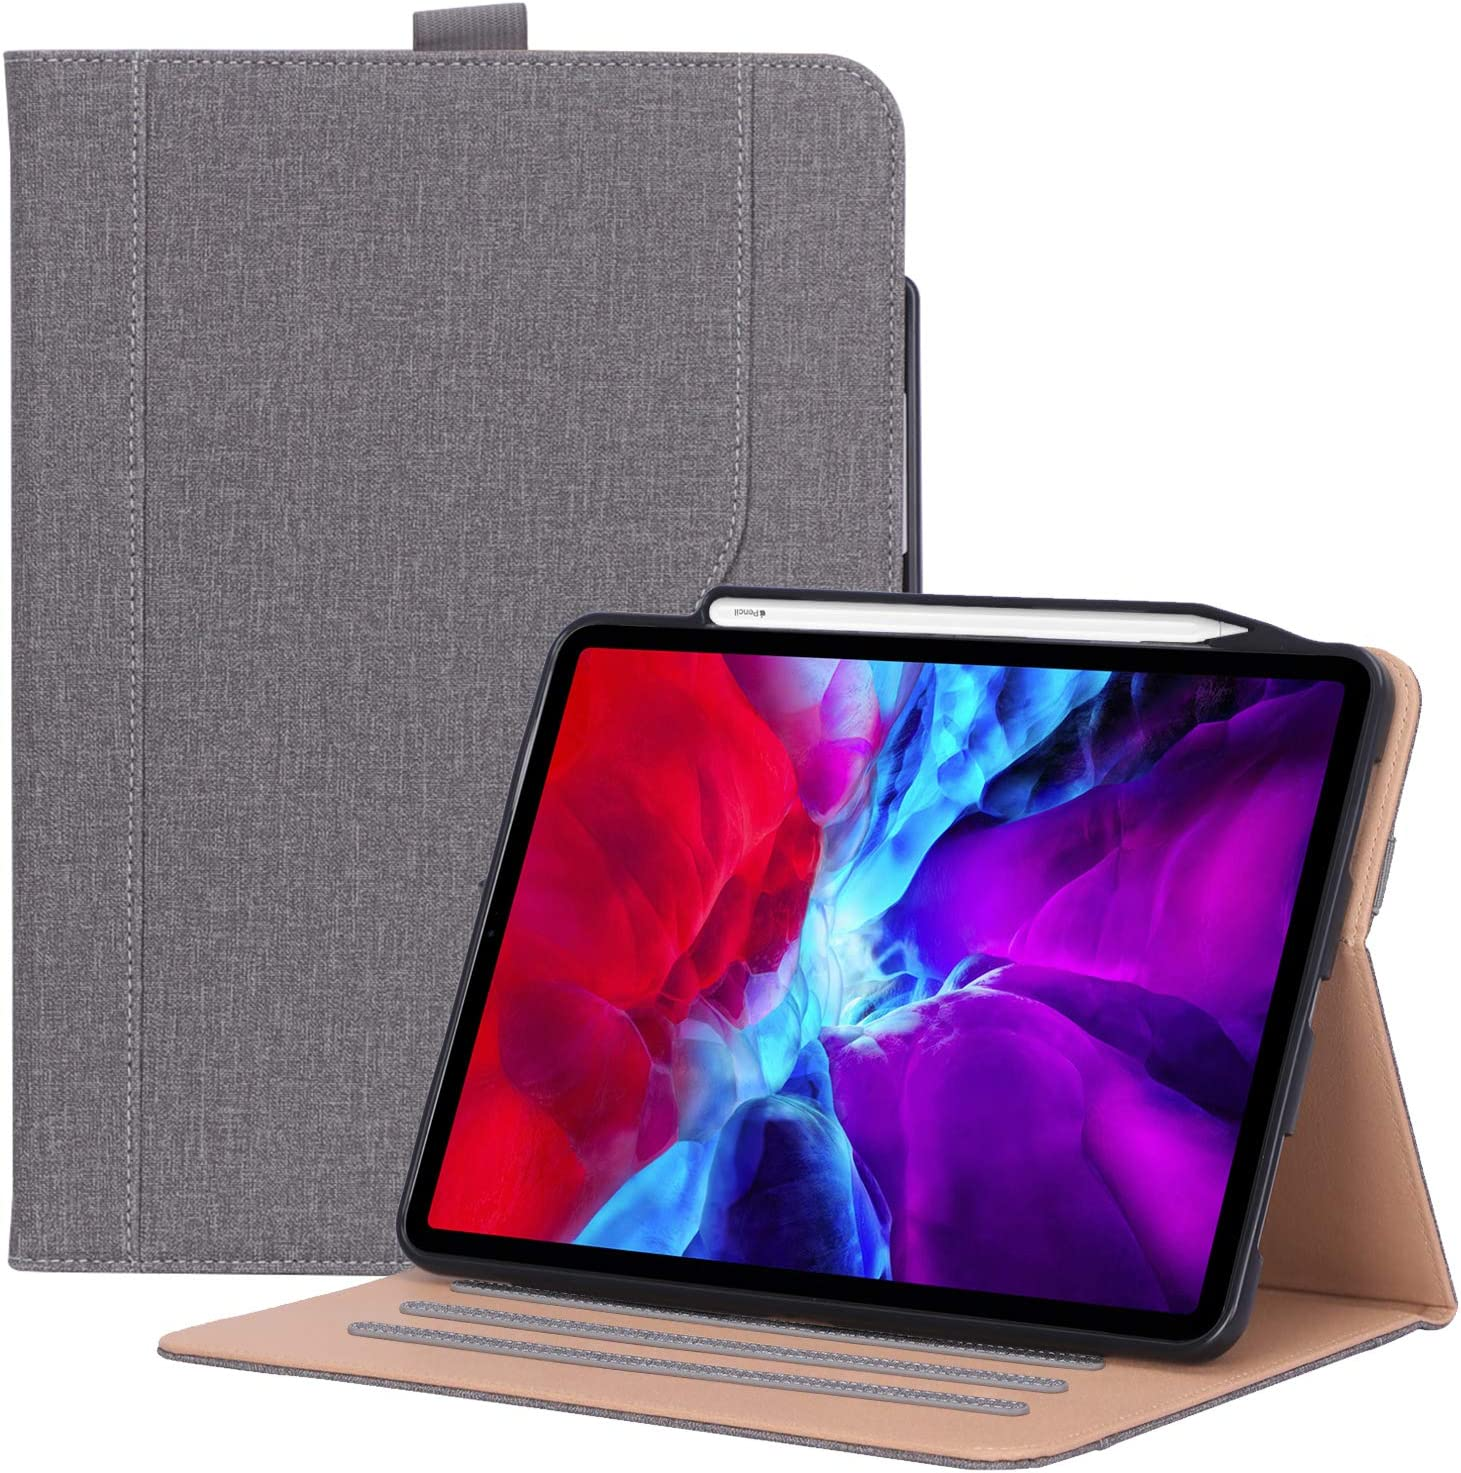 ProCase iPad Pro 12.9 Case 4th Gen 2020 / 3rd Gen 2018, Leather Stand Folio Cover Case with Pencil Holder & Strap [Support Apple Pencil 2 Charging] for iPad Pro 12.9 4th Gen 2020 / 3rd Gen 2018 –Grey